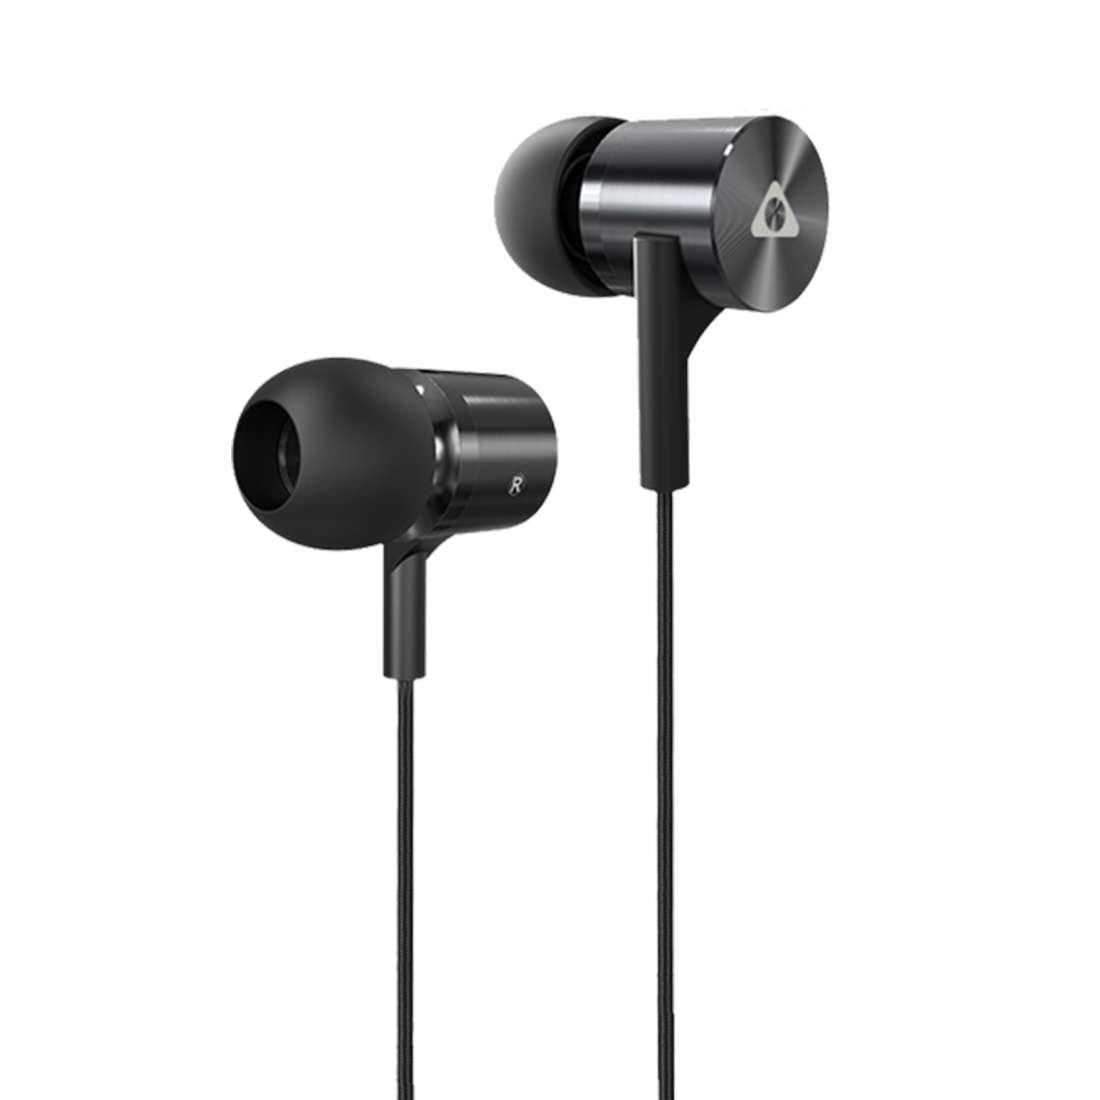 Stuffcool Bac In-Ear Wired Earphones Headphone with Stereo Sound and Hands-free Microphone and Volume Button for iPhone, iPad, Android Phones...